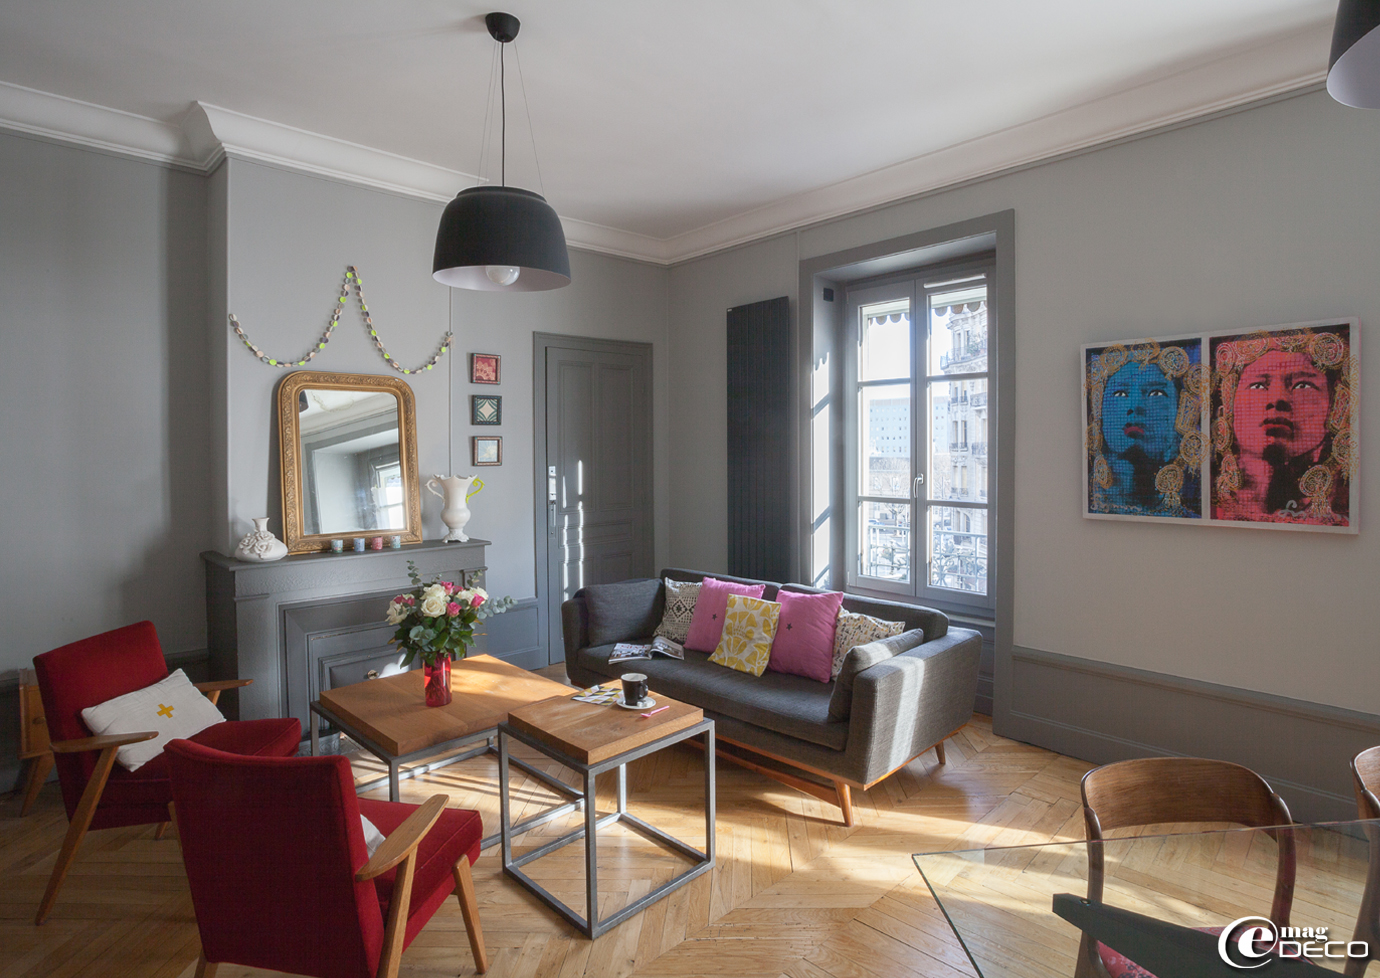 Un appartement trendy  Lyon  emagDECO  Magazine de dcoration